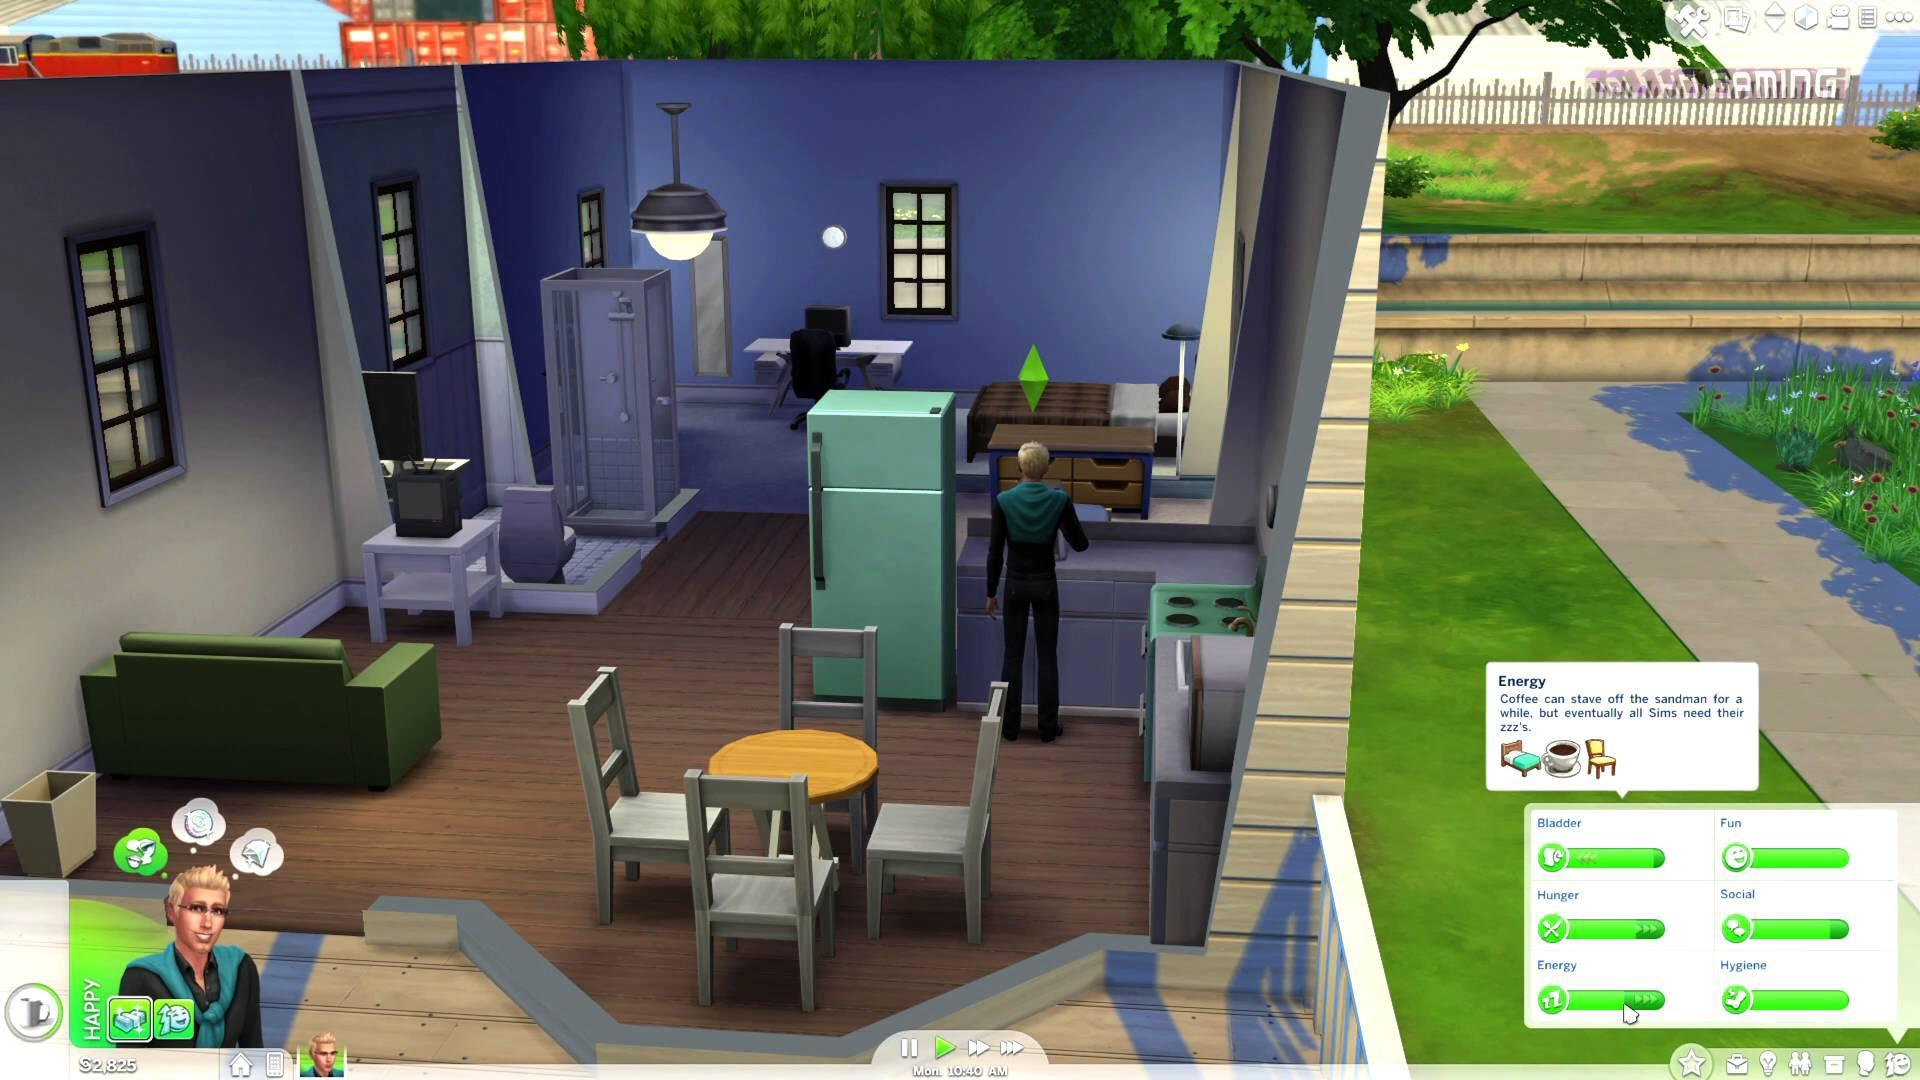 Game The Sims 4 Ultimate FREE New tips for Android - APK